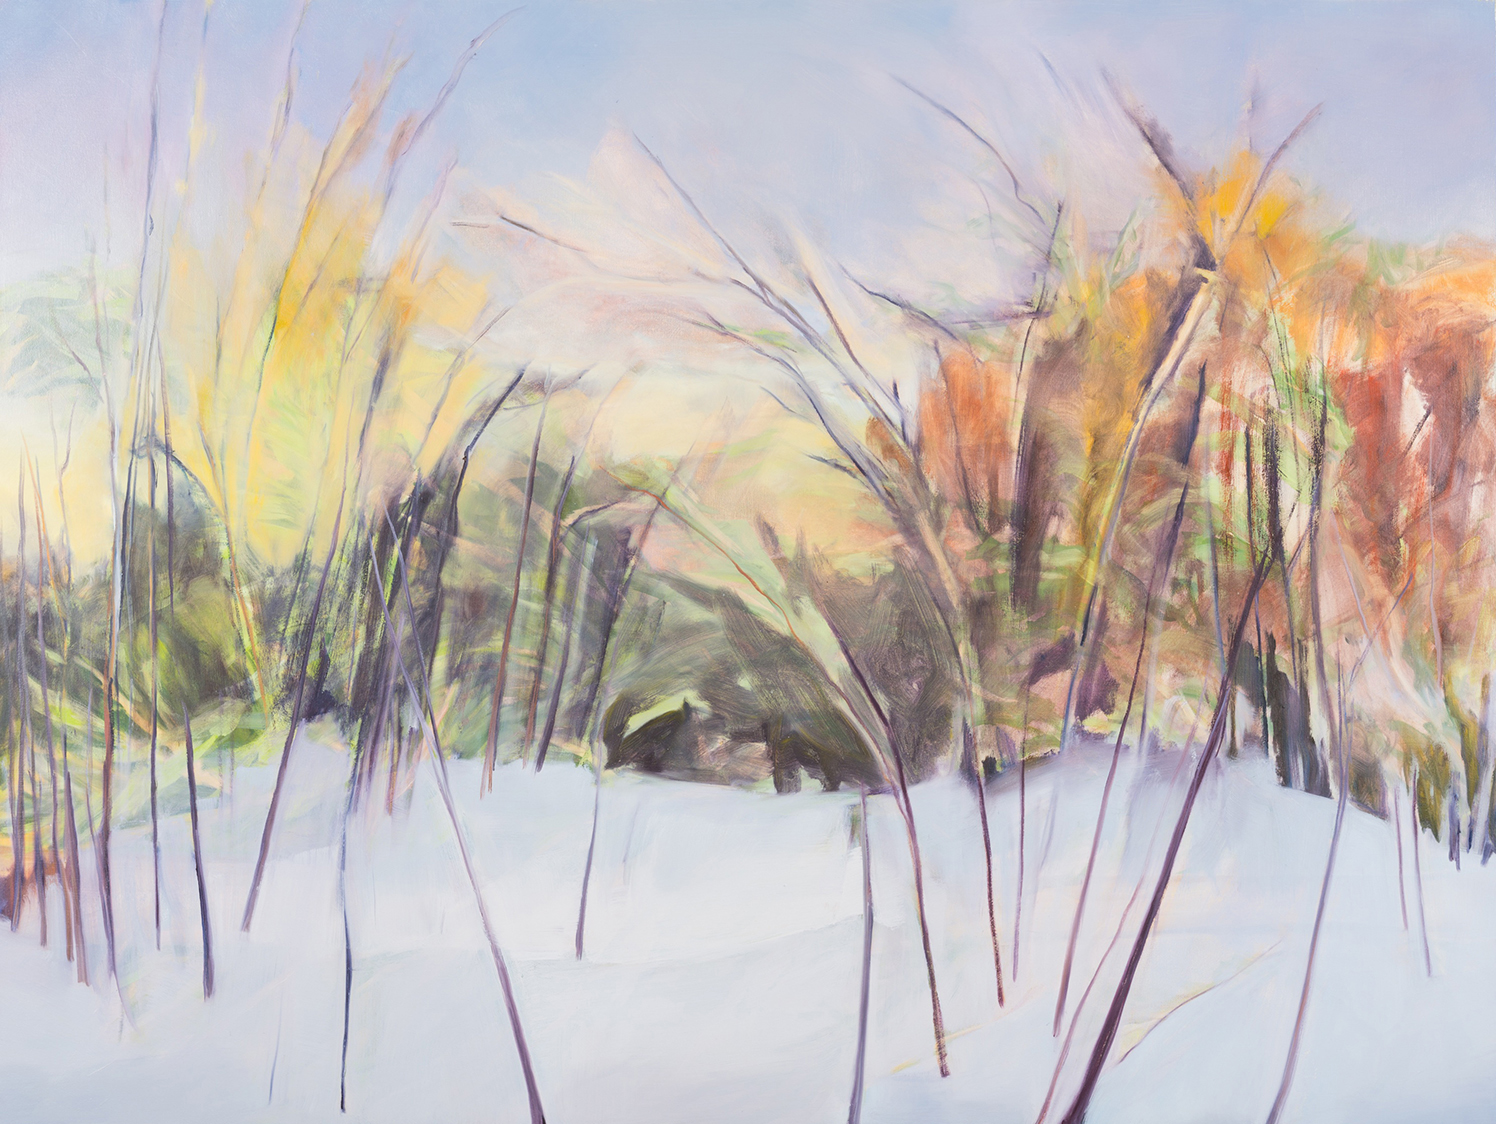 Early Winter Redoux , 2013, Oil on canvas, 54 x 72 inches